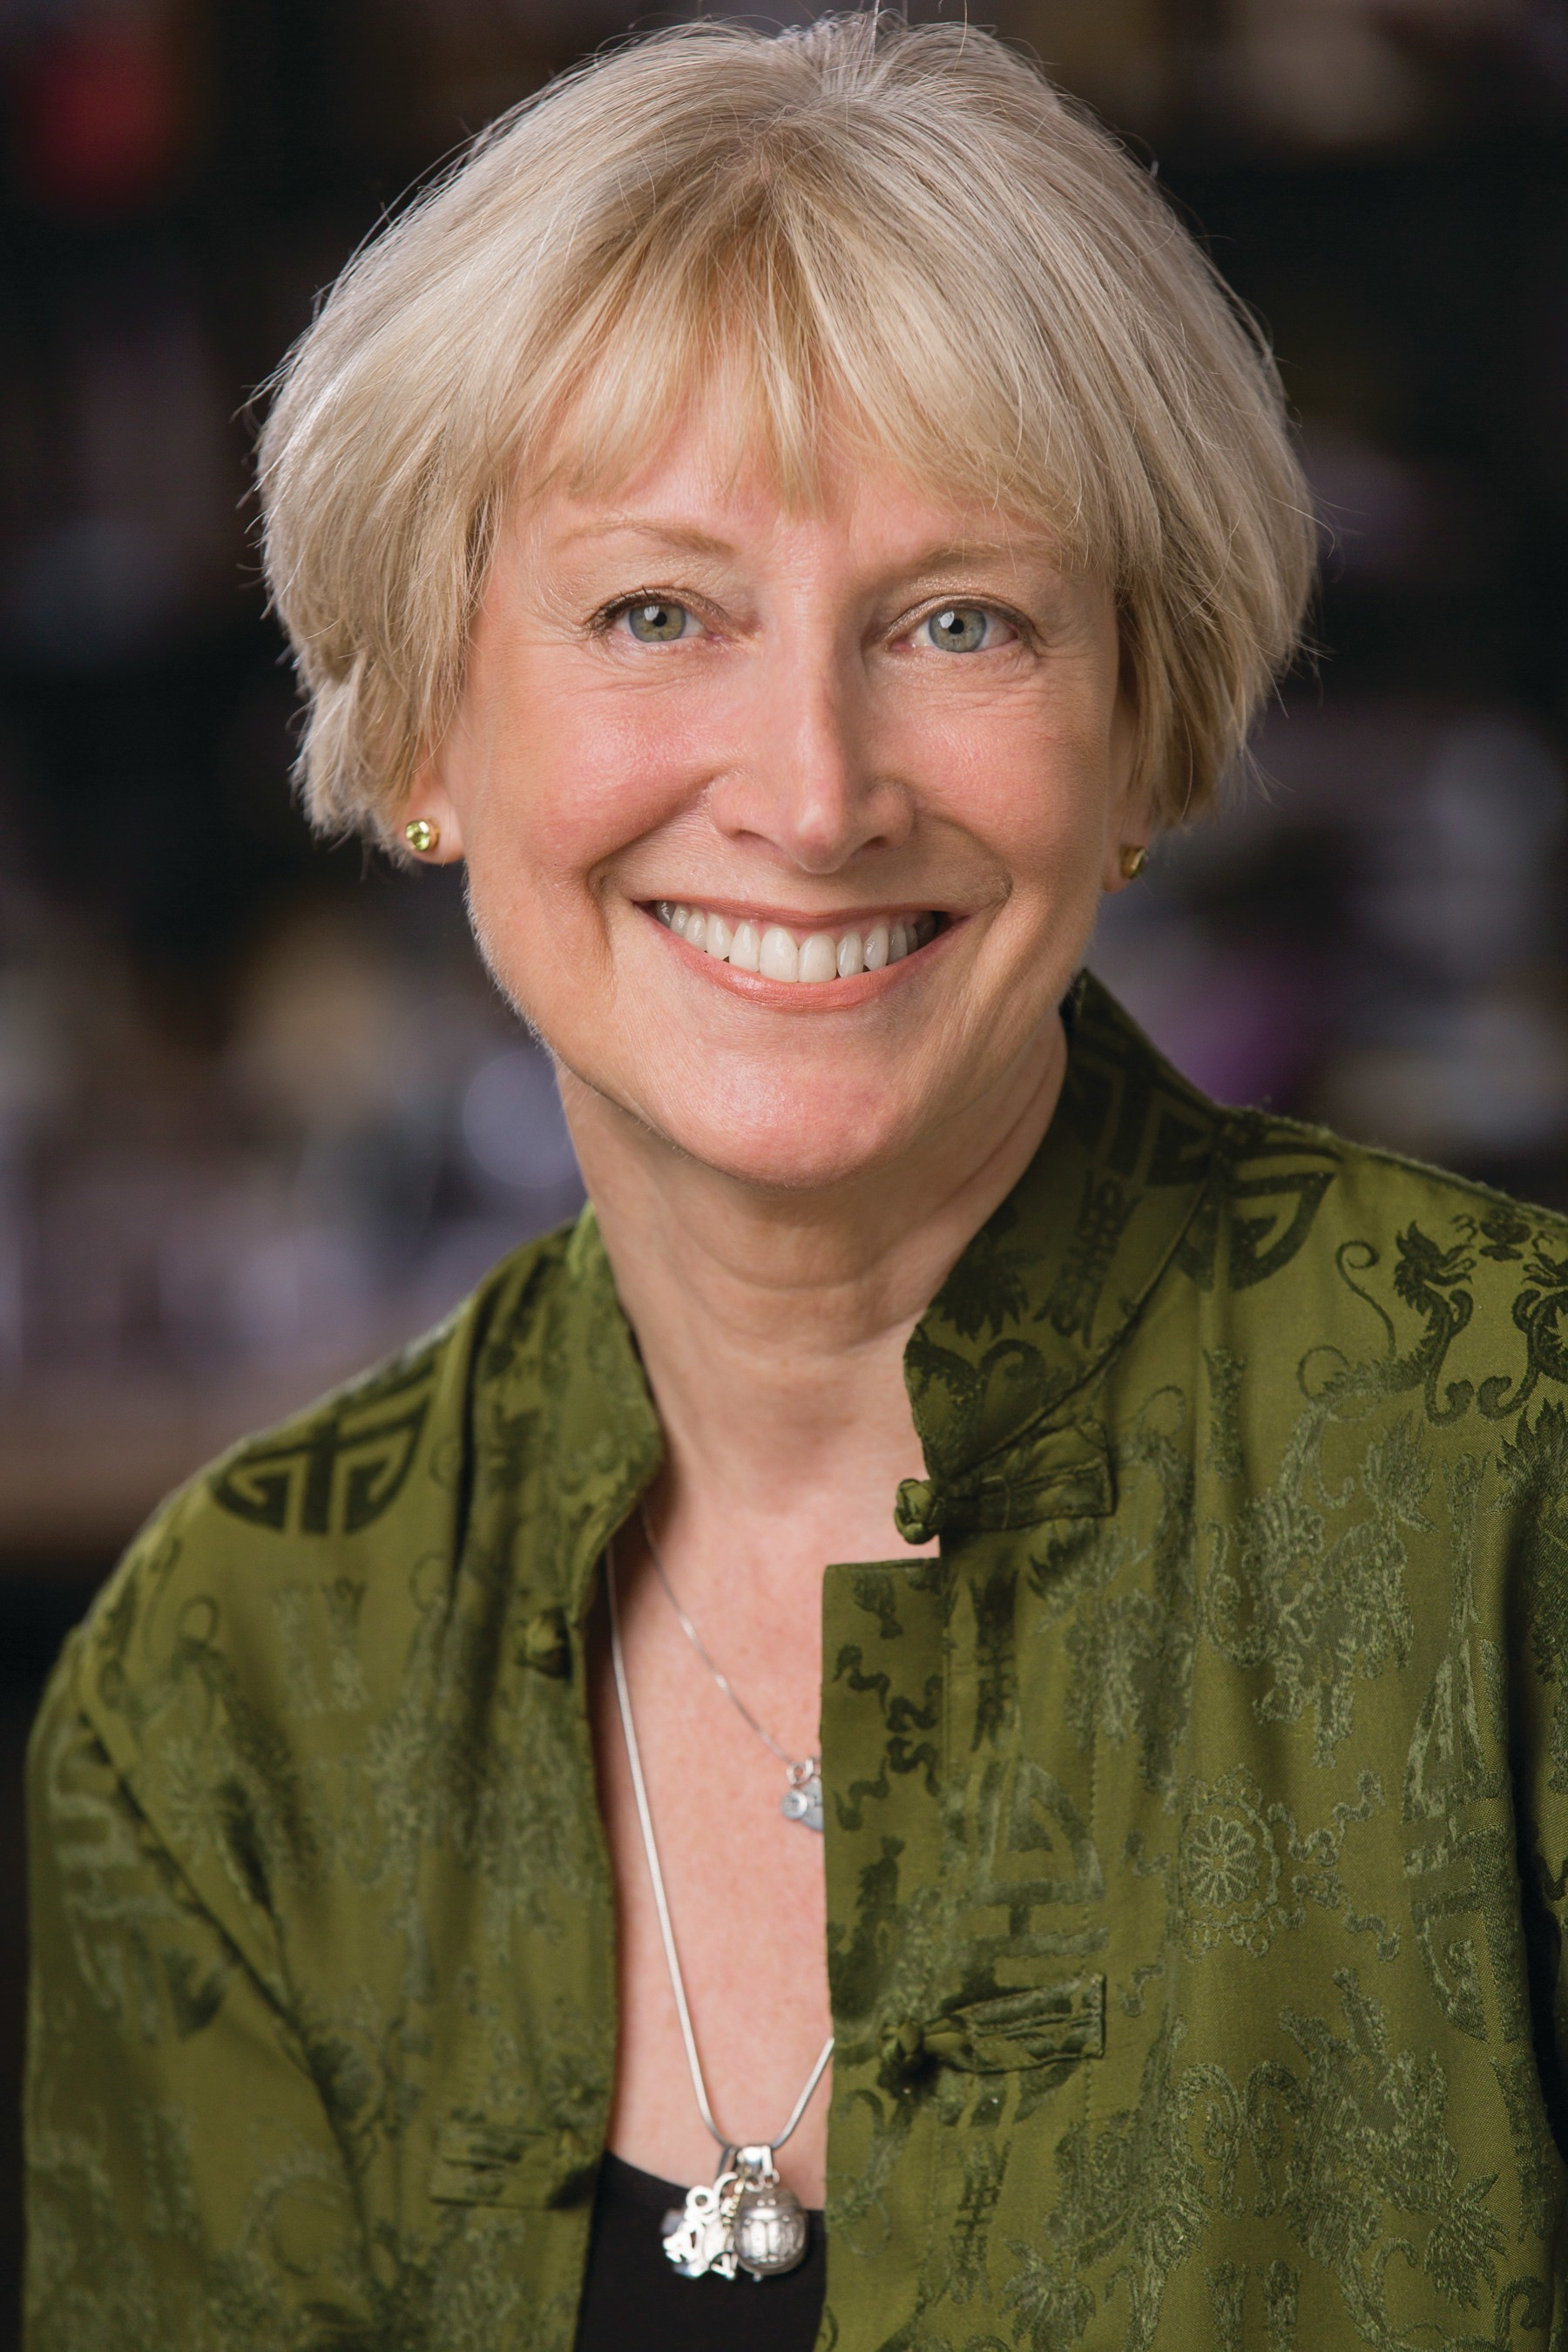 Cornell Nursing School to Honor Compassion & Choices President Barbara Coombs Lee